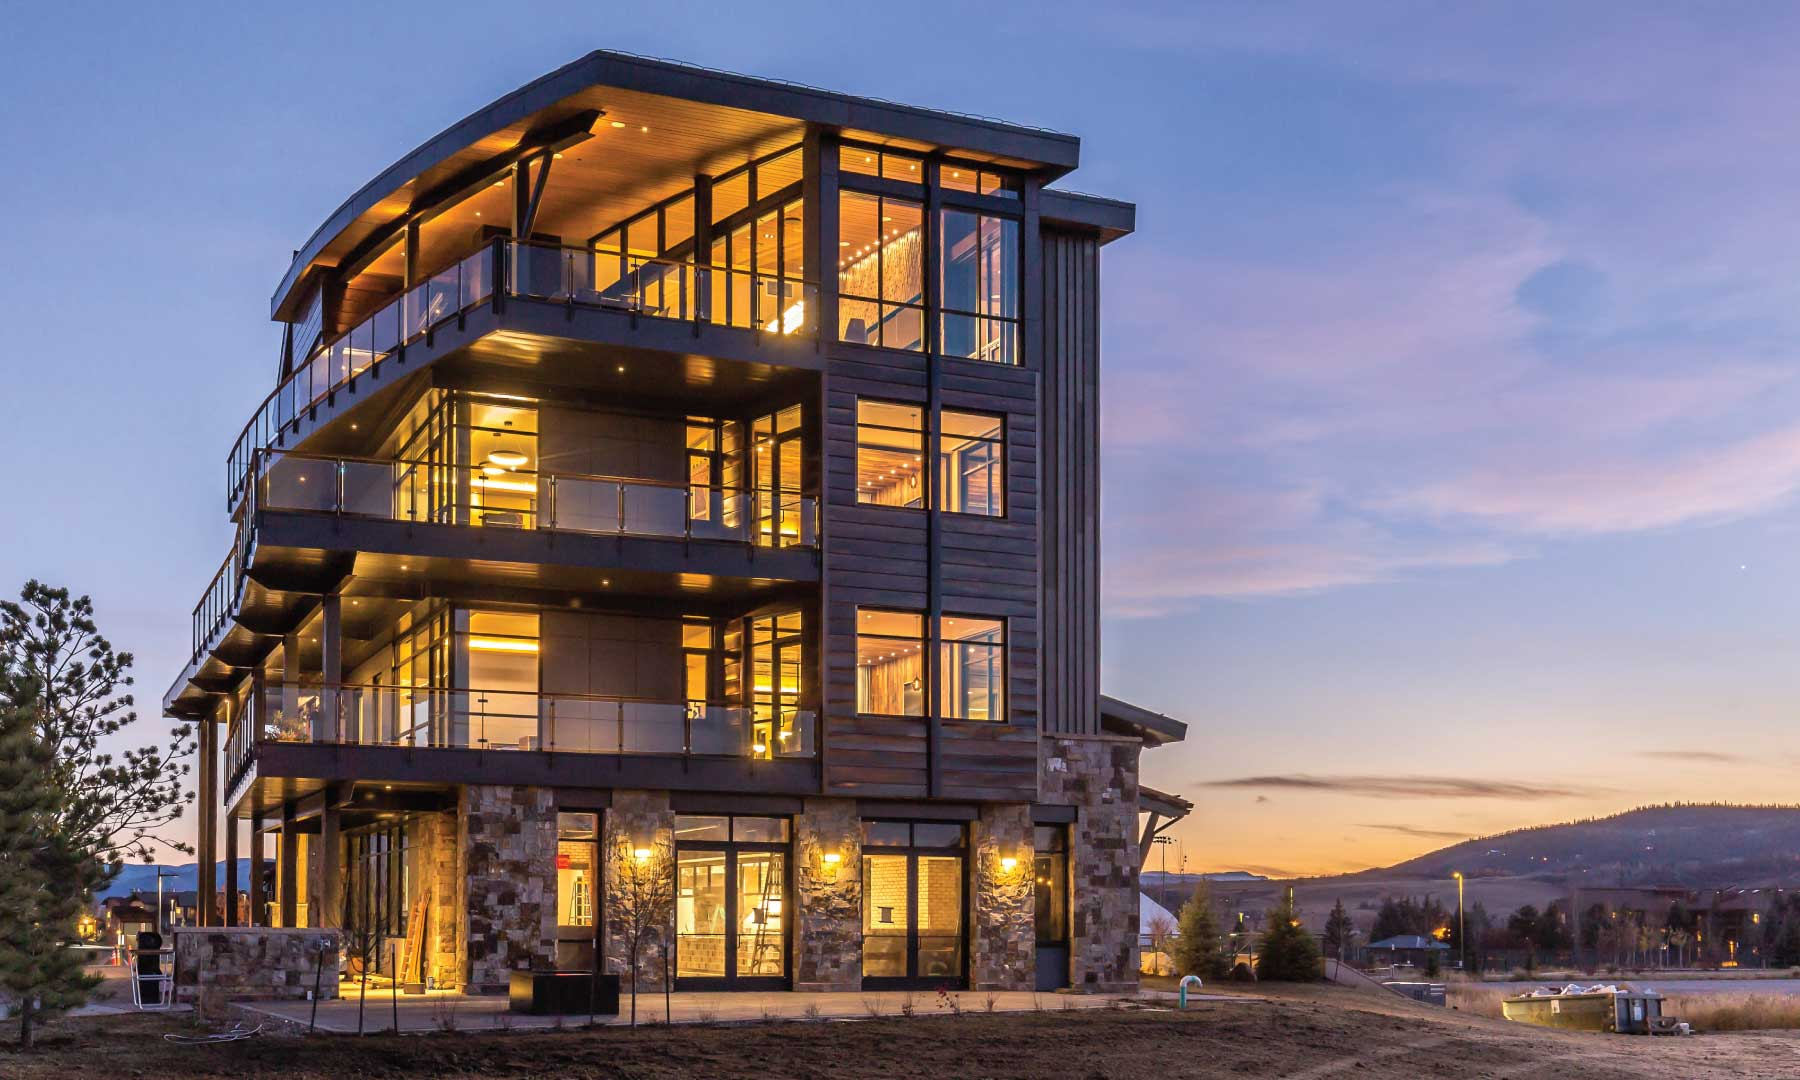 central electric steamboat springs yampa valley colorado electrical contractor install DEER PARK 3 - Photography